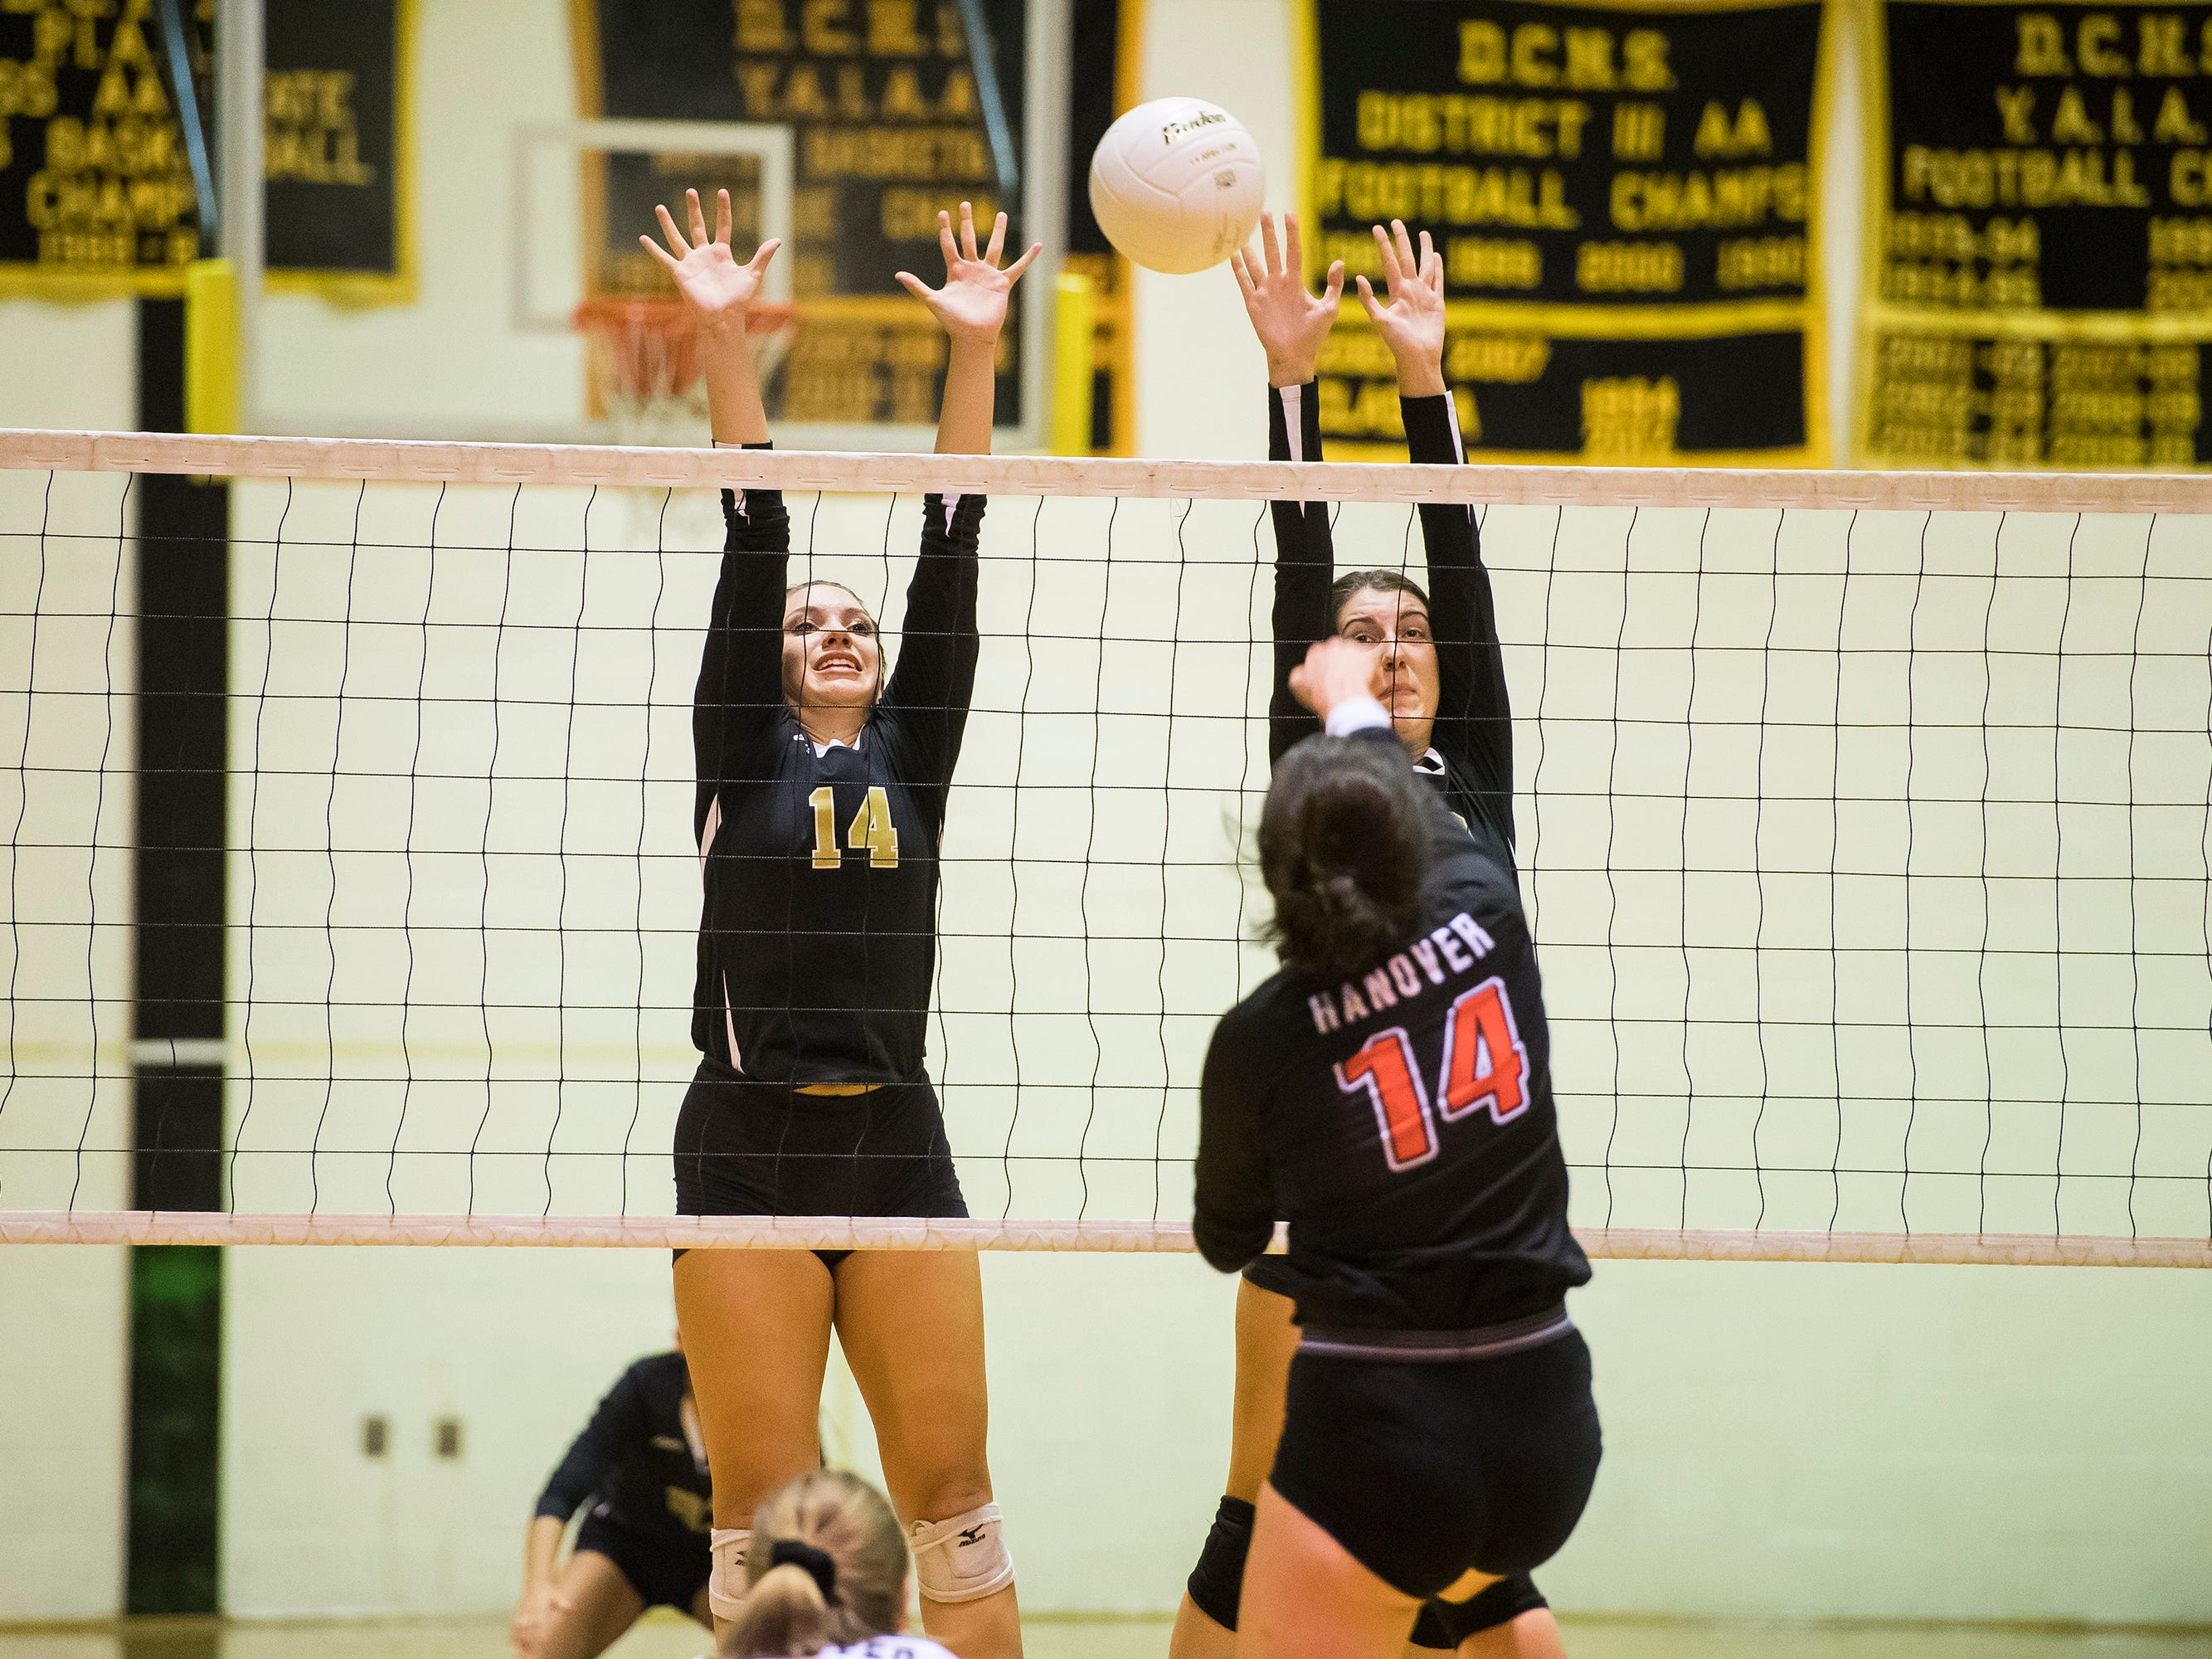 Delone Catholic's Molly Raville (14) and Ava Bunch attempt to block a shot from Hanover's Allyson Montour on Tuesday, September 18, 2018. The Squirettes swept the Hawkettes 25-16, 25-19, 25-14.